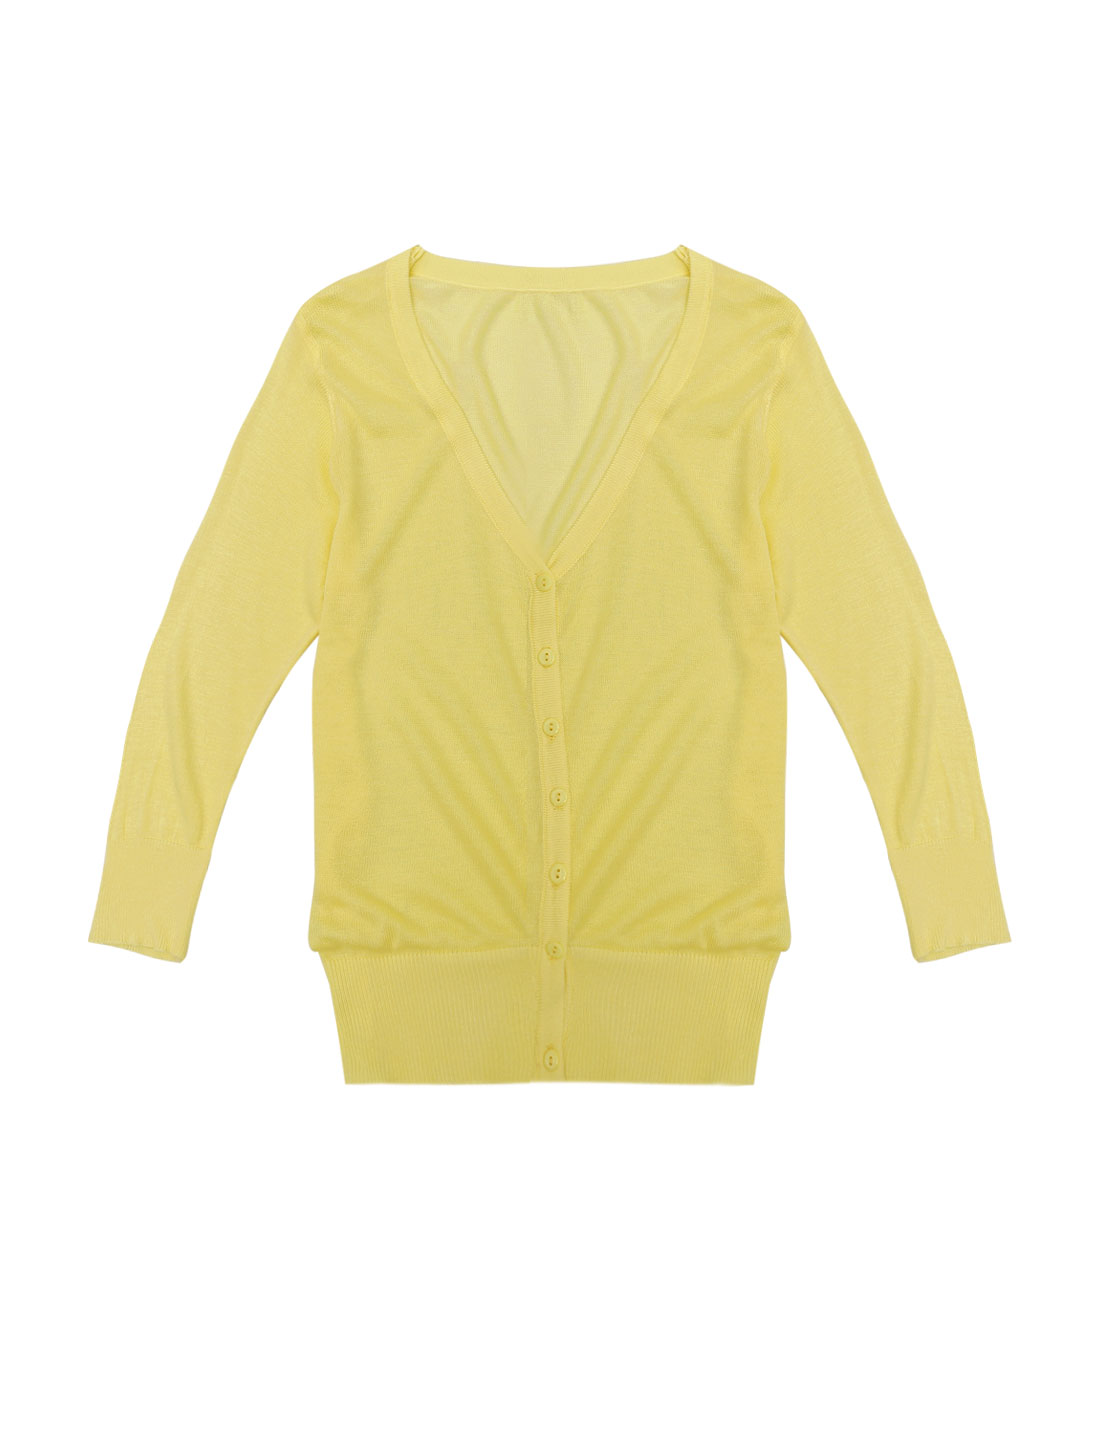 V Neck 3/4 Sleeves Single Breasted Knit Cardigan Yellow XS